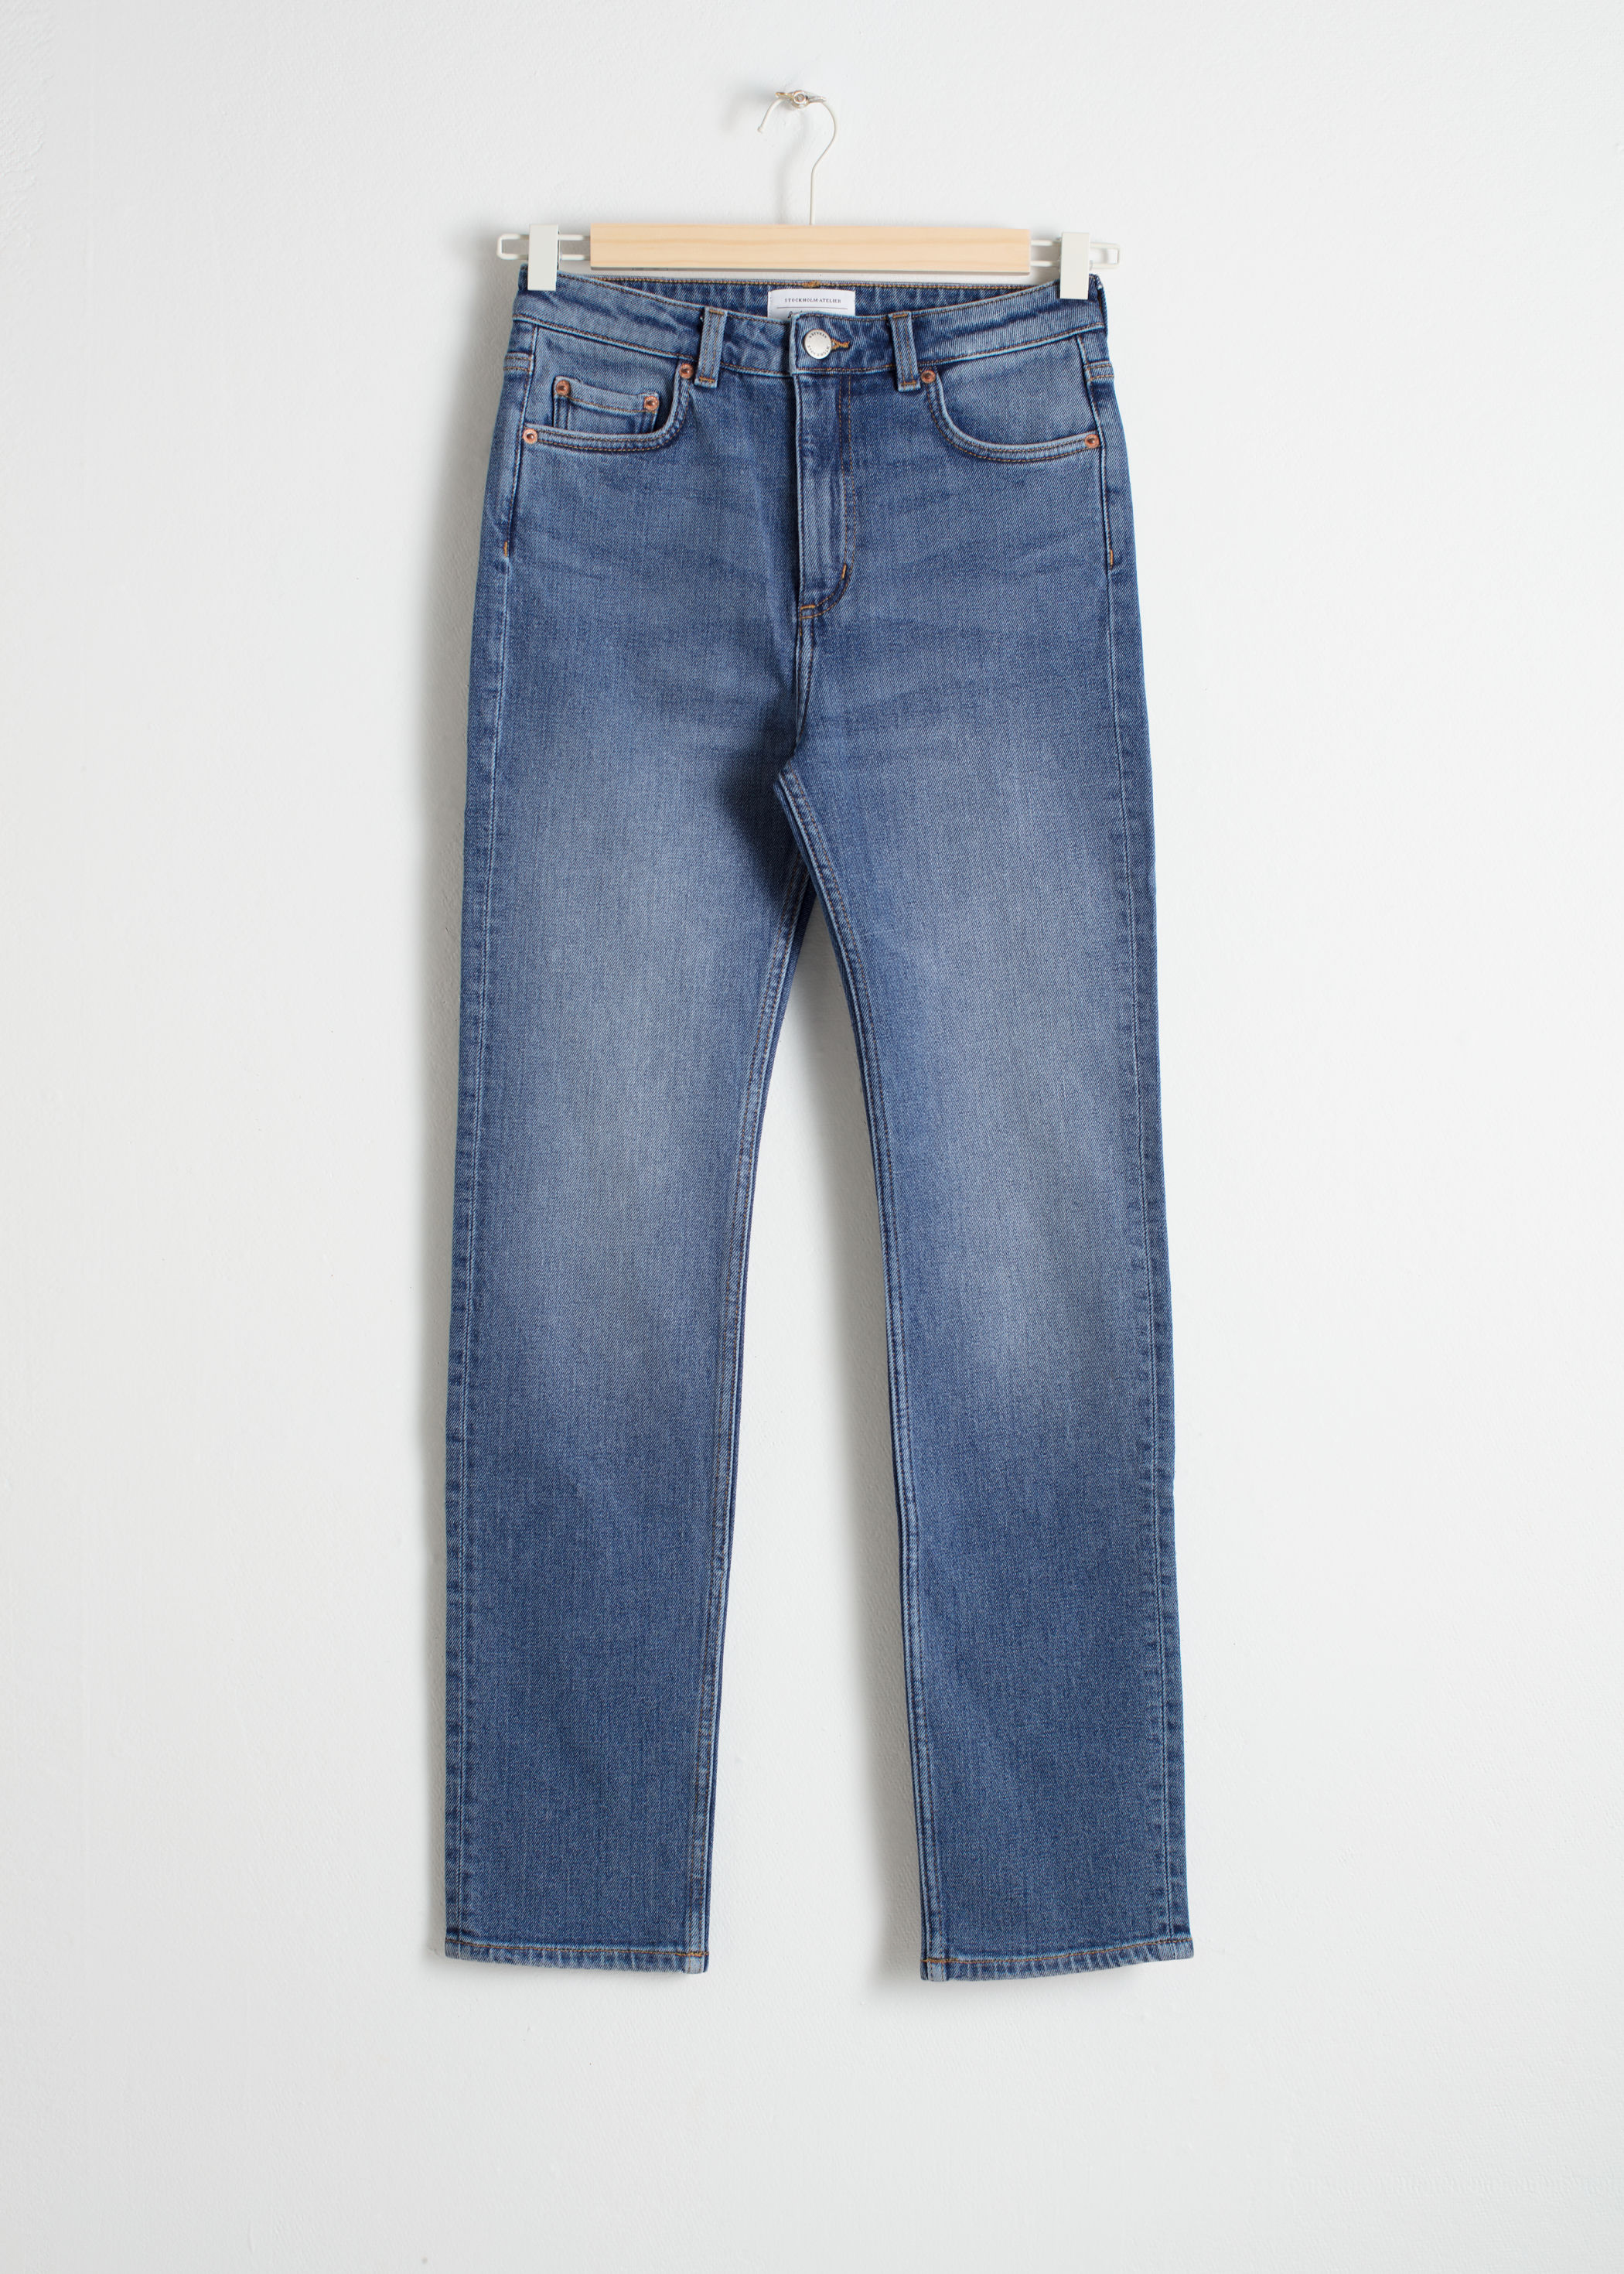 Straight Jeans $85